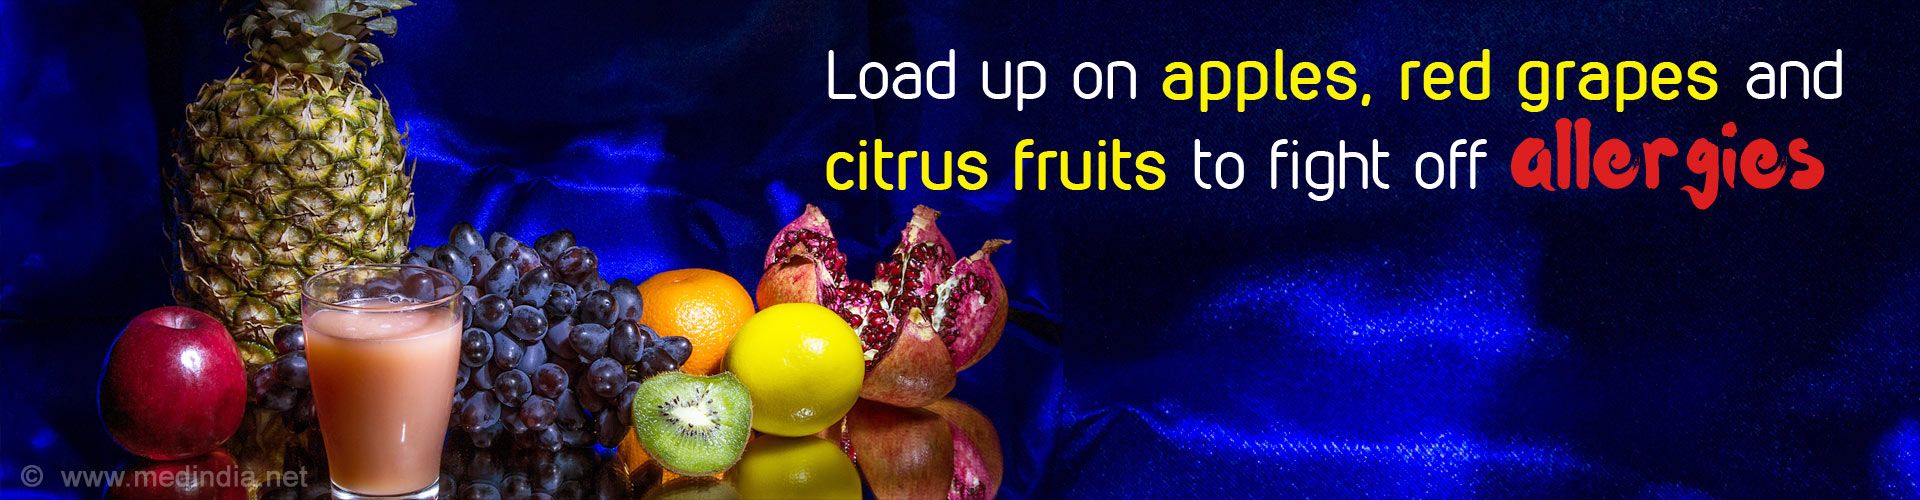 Load up on apples, red grapes, and citrus fruits to fight off allergies.